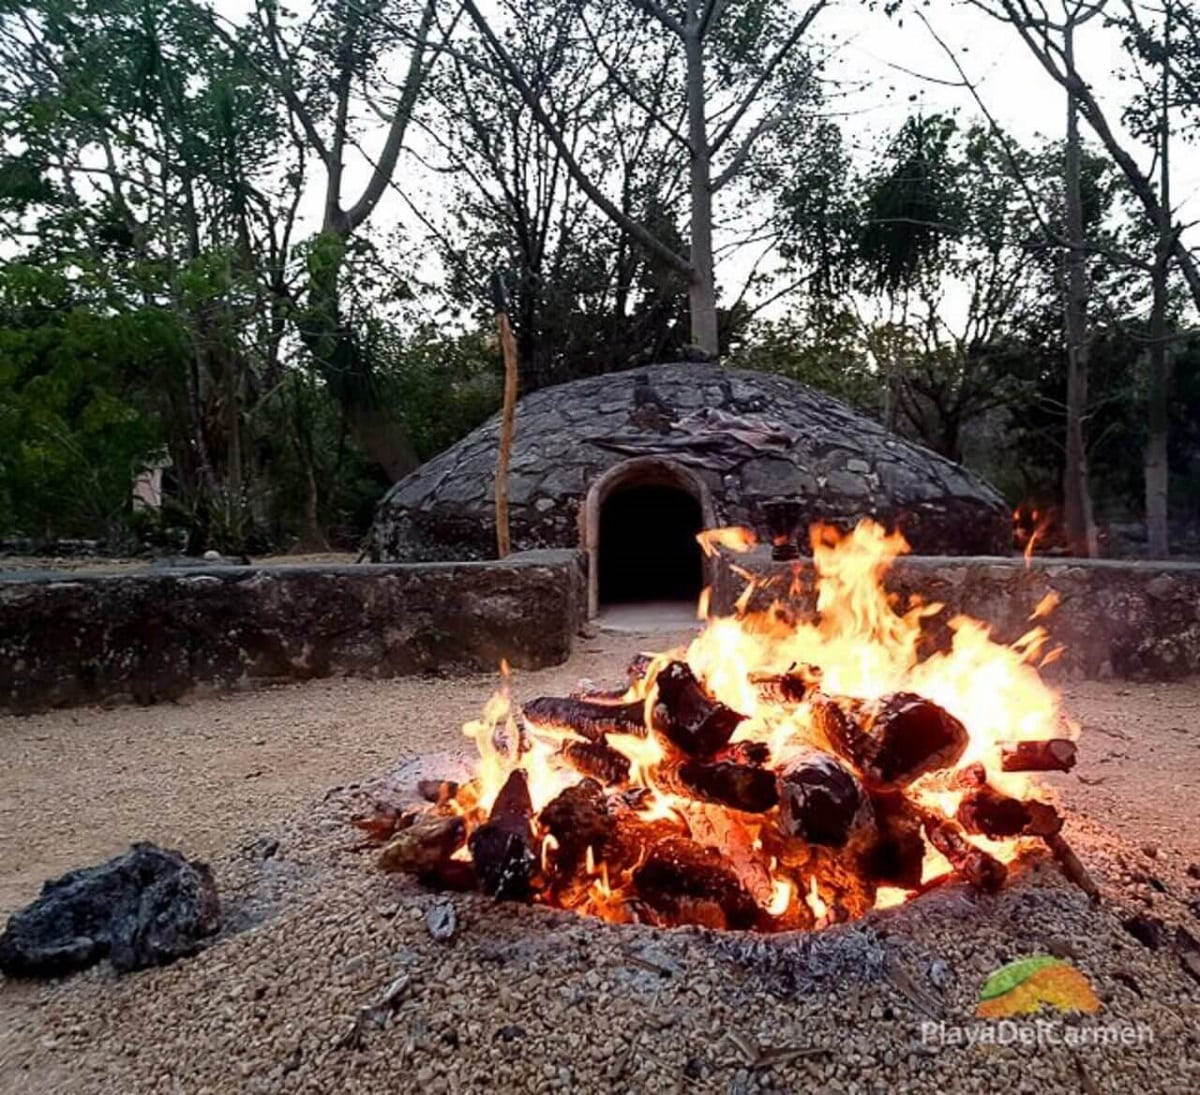 Of Screams, Sweat & Shamans: My Experience in a Temazcal Ceremony